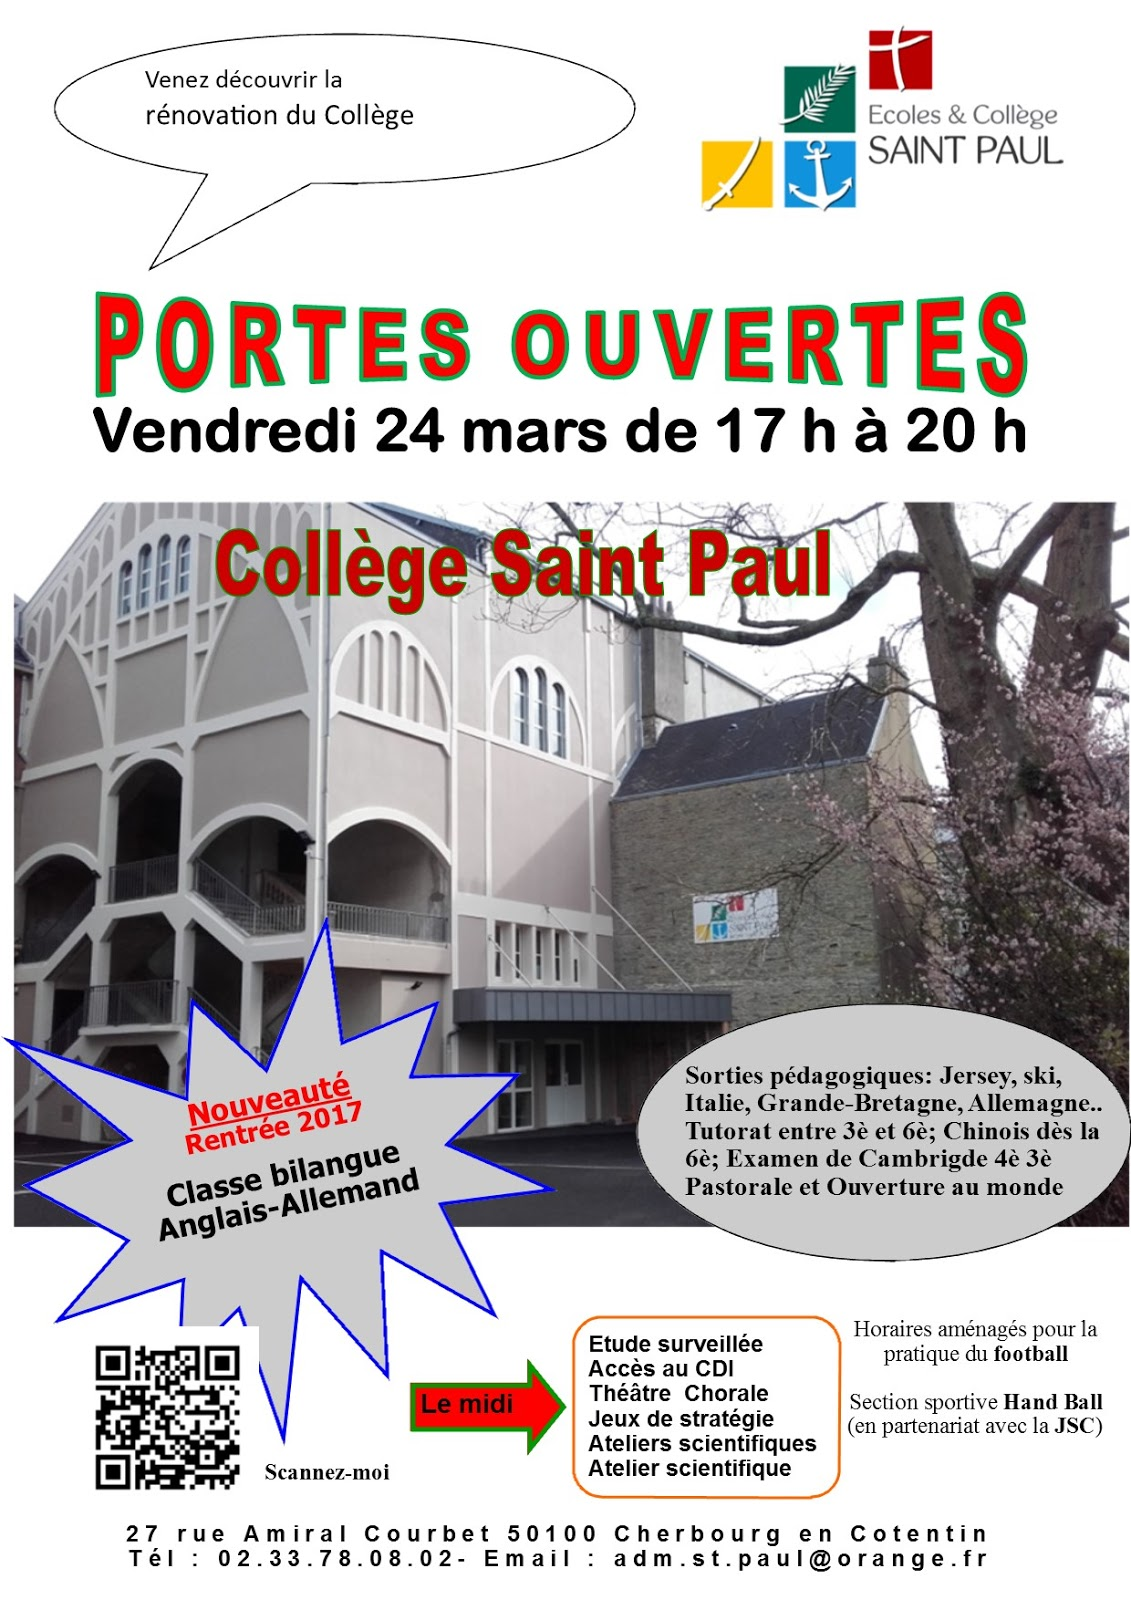 Coll ge saint paul for Porte ouverte patrouille de france salon